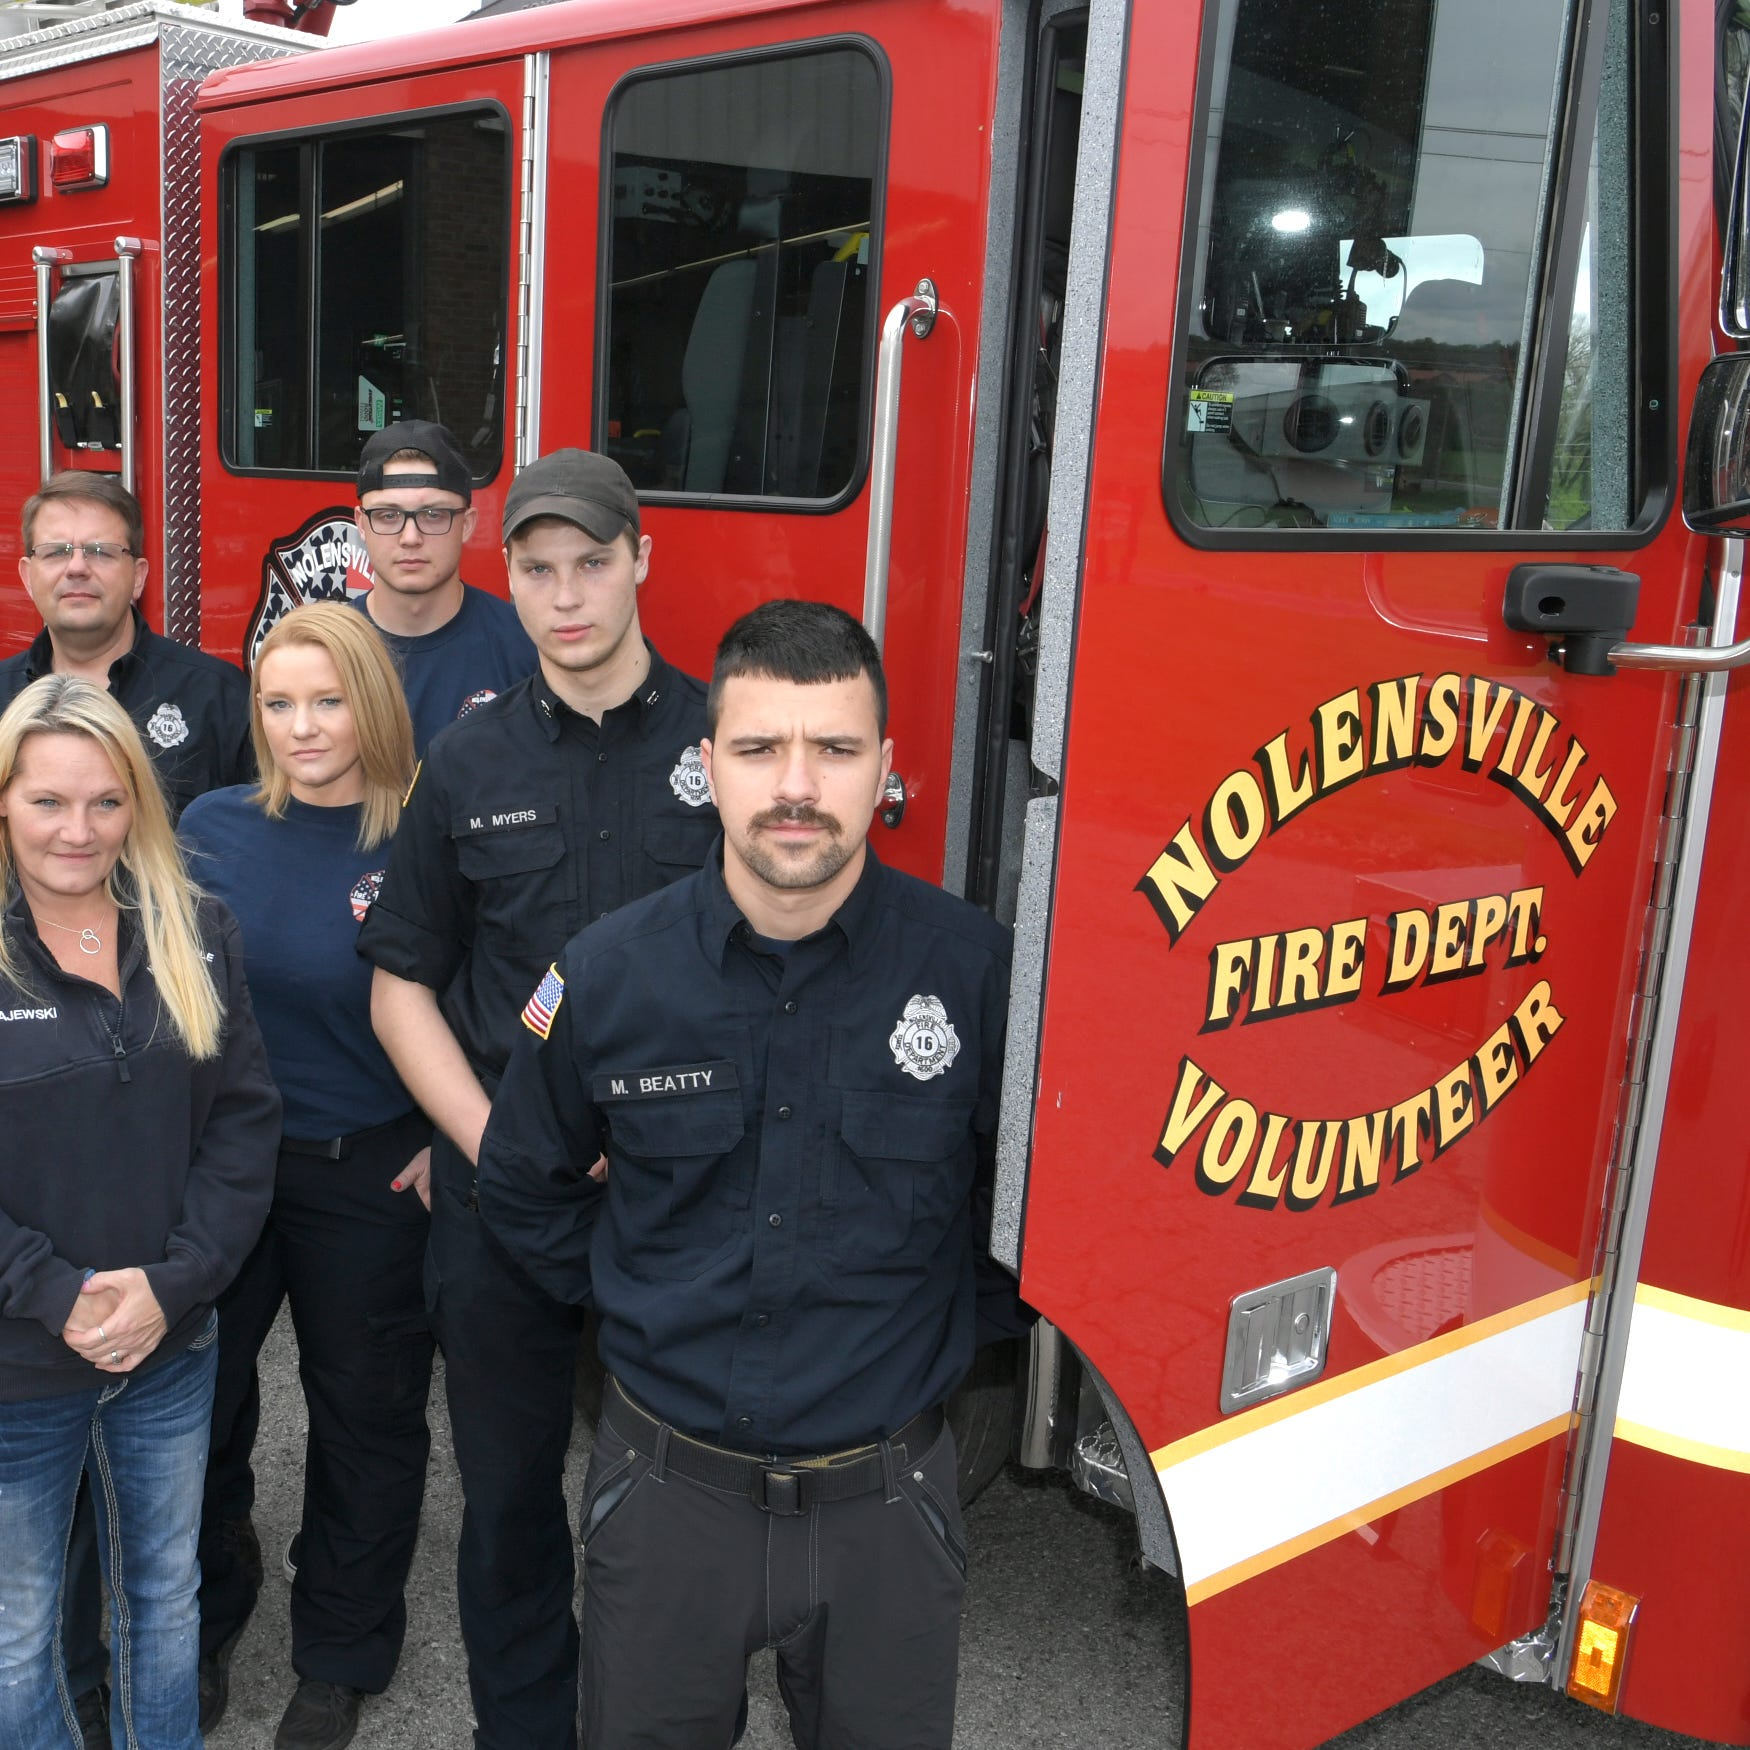 Nolensville faces turning point in growth: Is it time to pay firefighters?